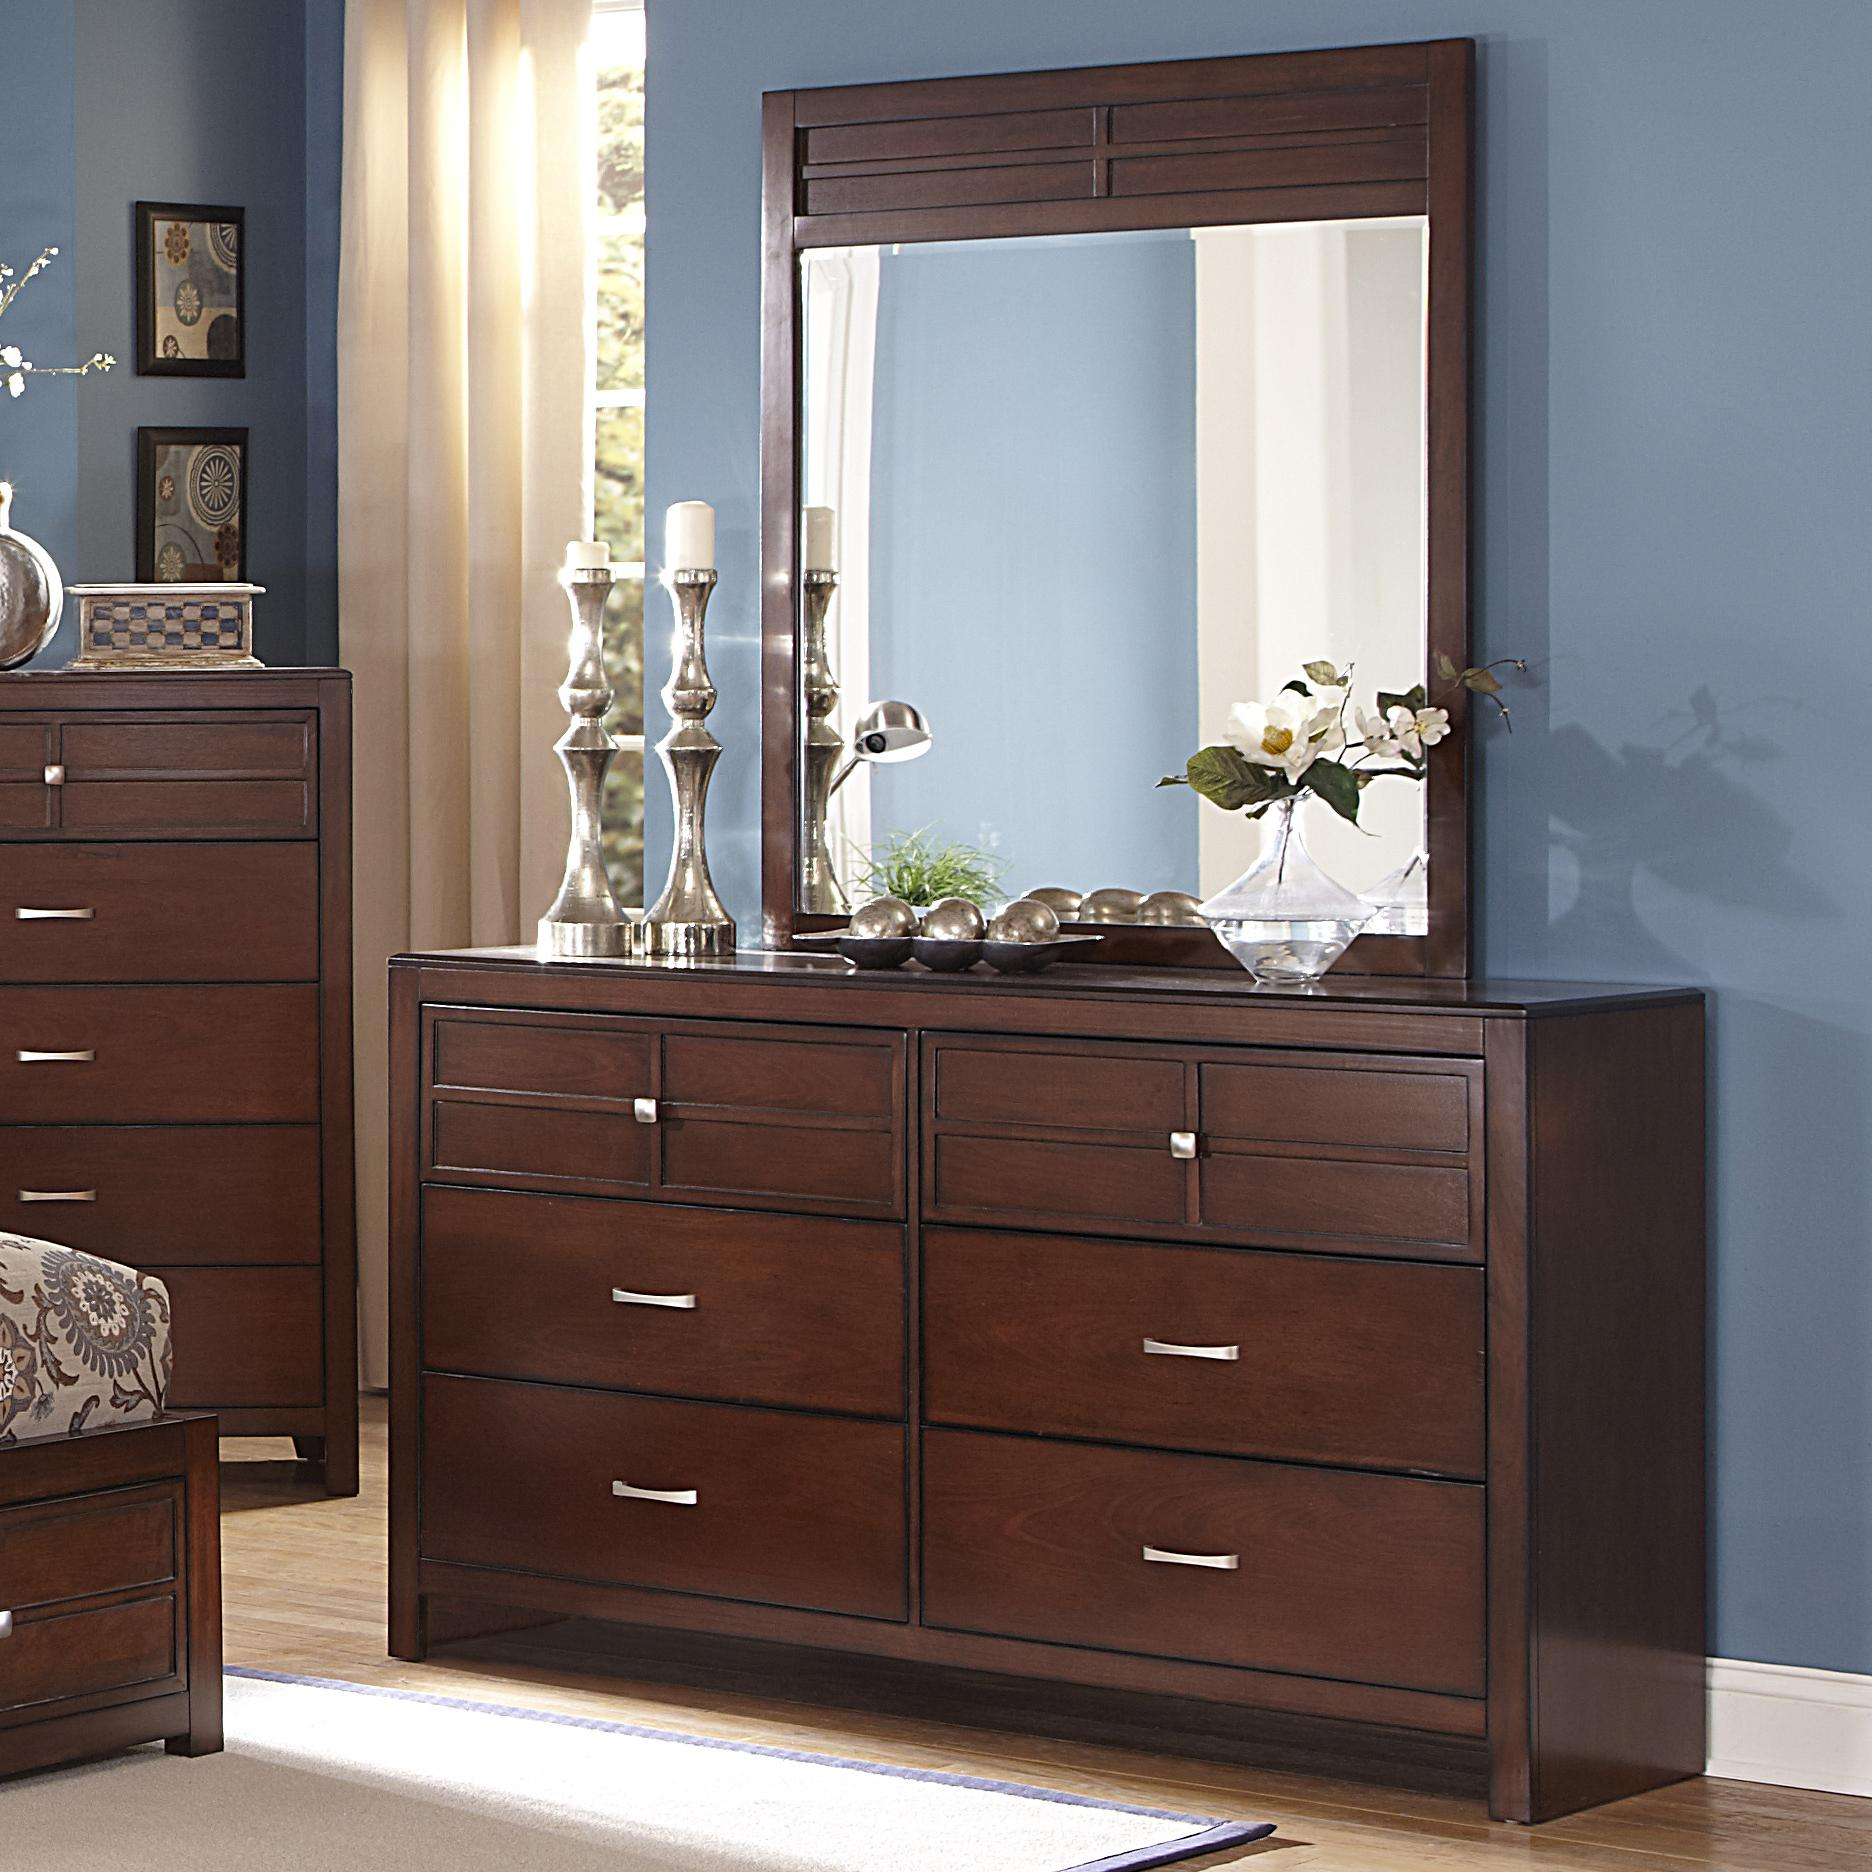 New Bedroom Set Kensington 6 Drawer Dresser And Vertical Mirror Set By New Classic At Royal Furniture